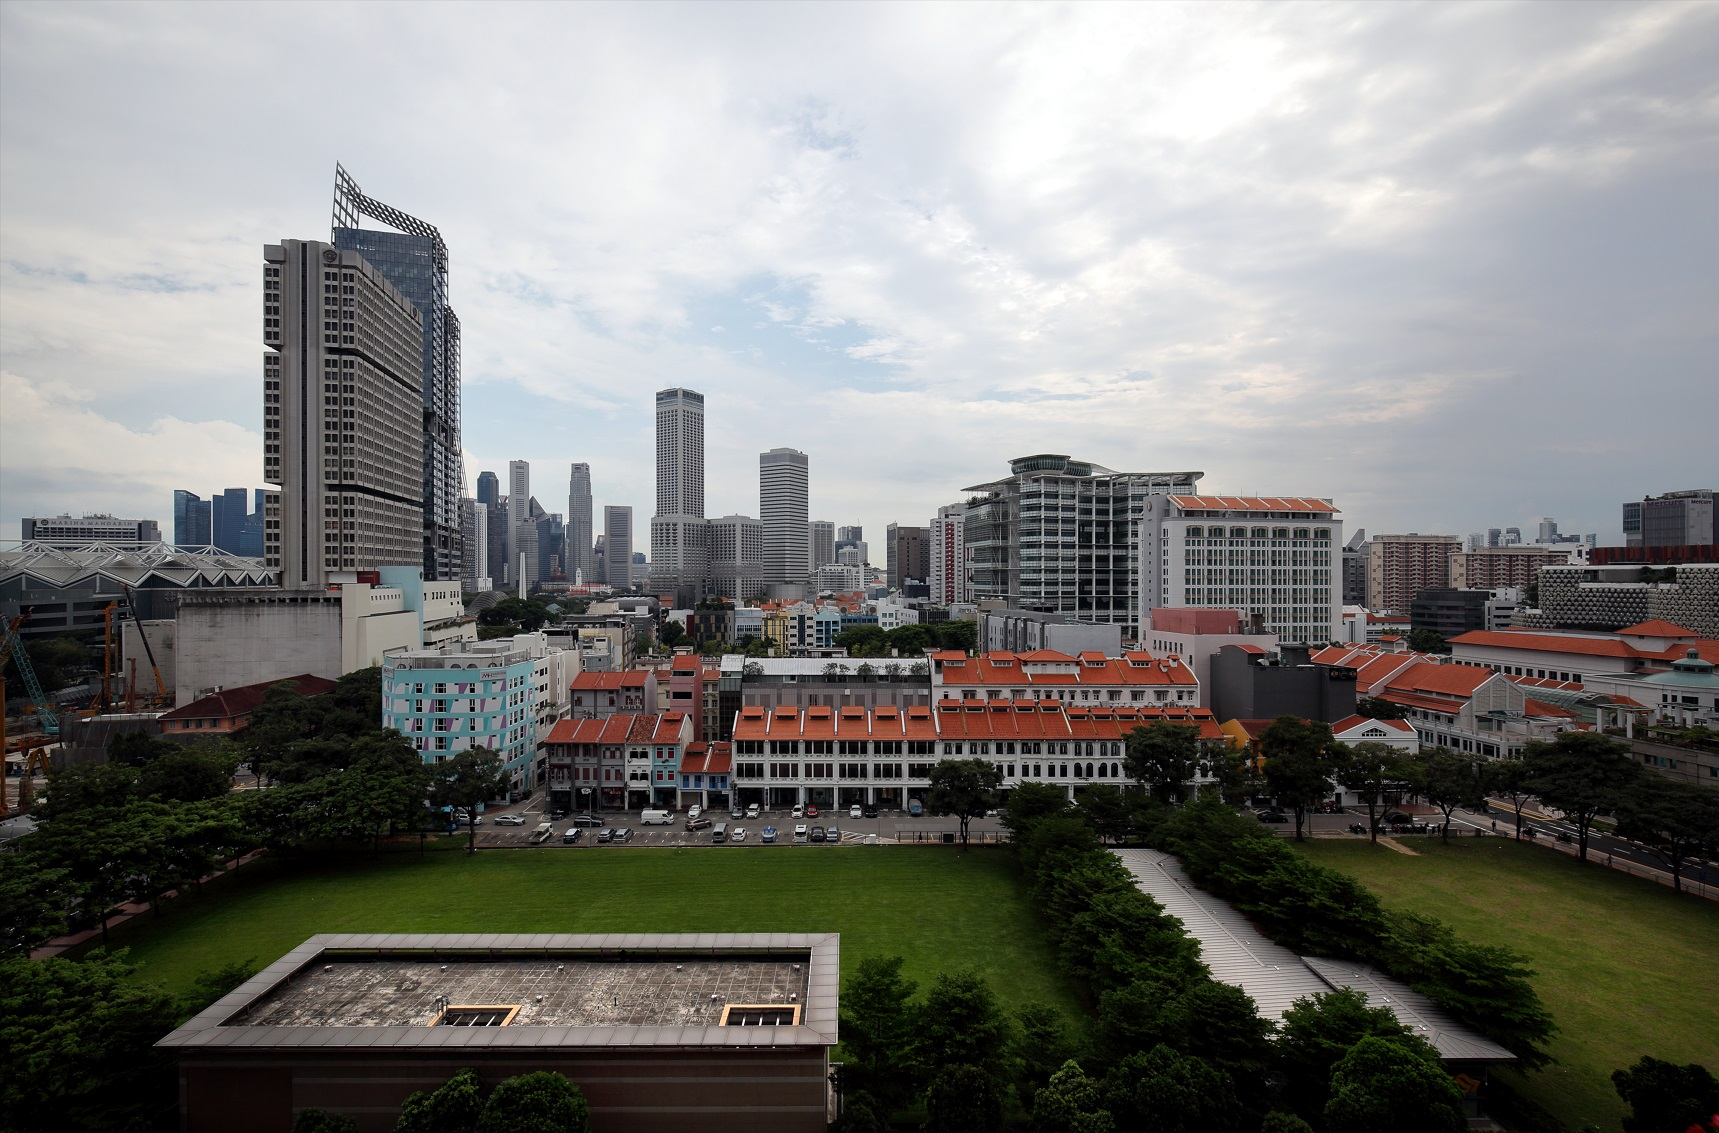 Guocoland - The site on Tan Quee Lan Street saw two bids, with GuocoLand submitting the top bid of $1,535 psf ppr (Photo: Samuel Isaac Chua/EdgeProp Singapore)